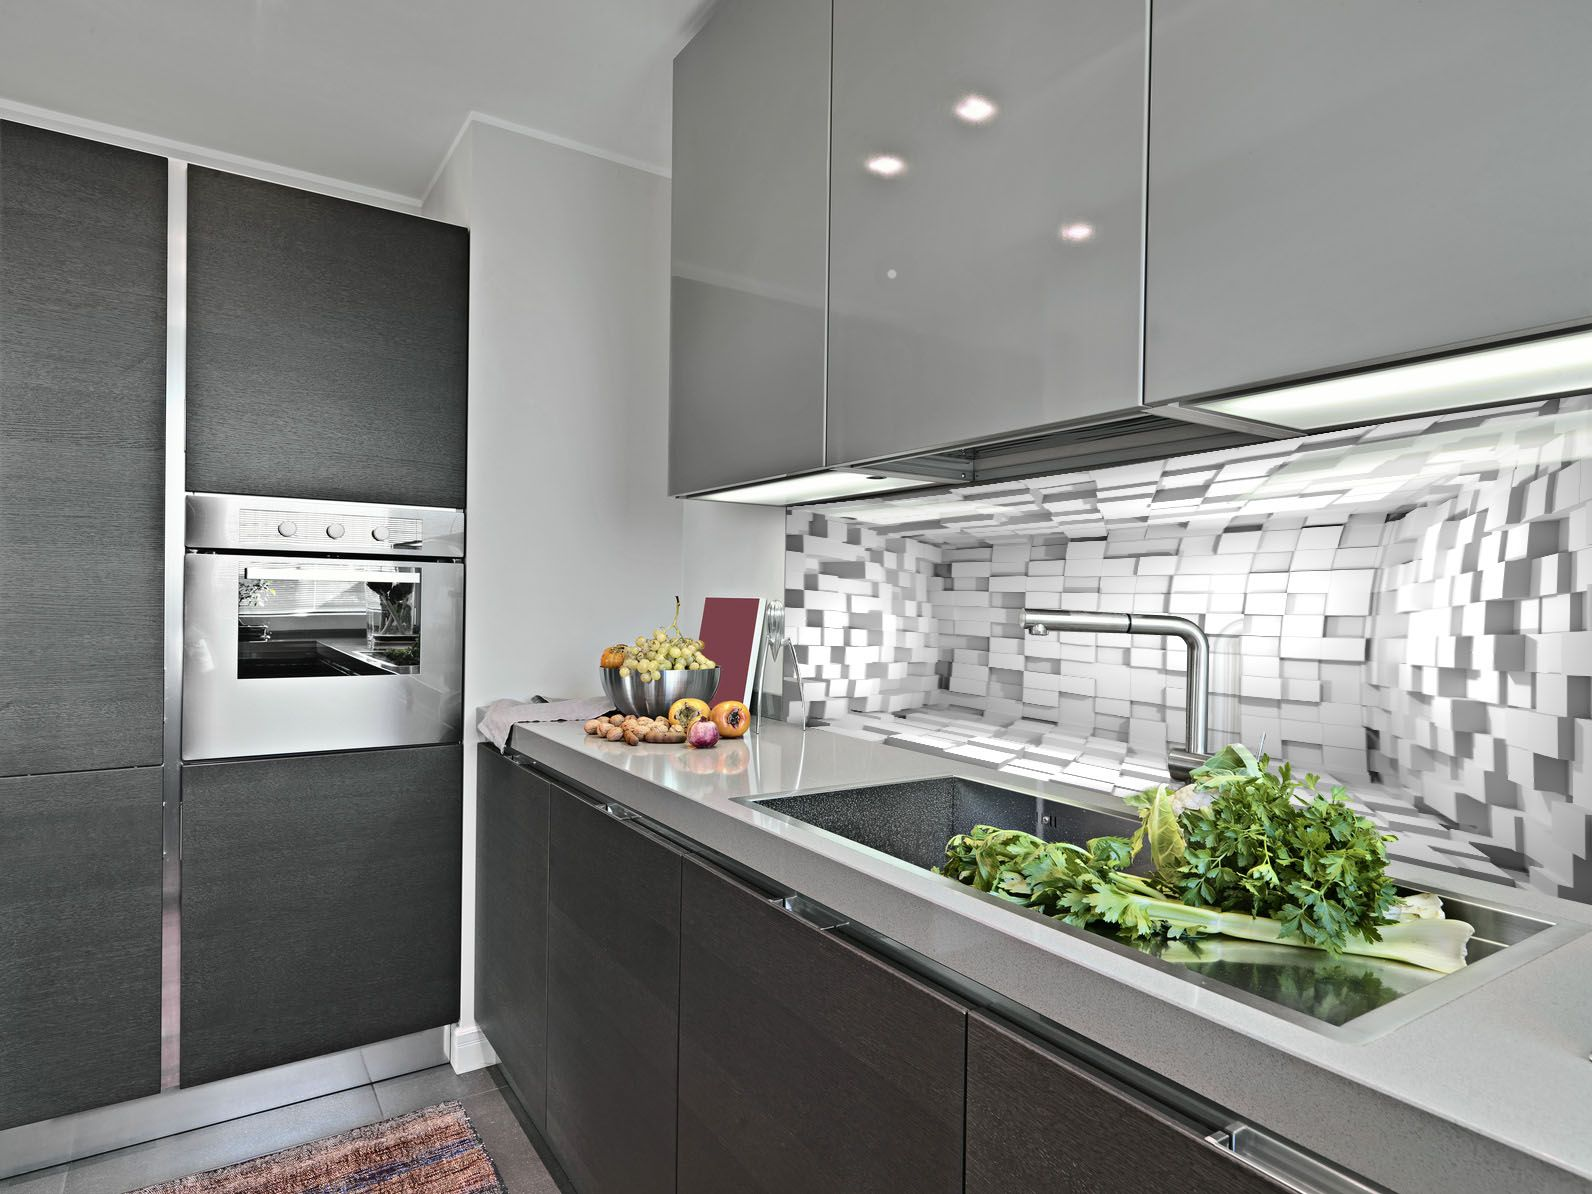 Decorating The Walls In The Kitchen Instead Of Plates Glass With Your Graphics The Effect Of Depth Kitchen Fittings Grey Kitchen Cupboards Grey Kitchens